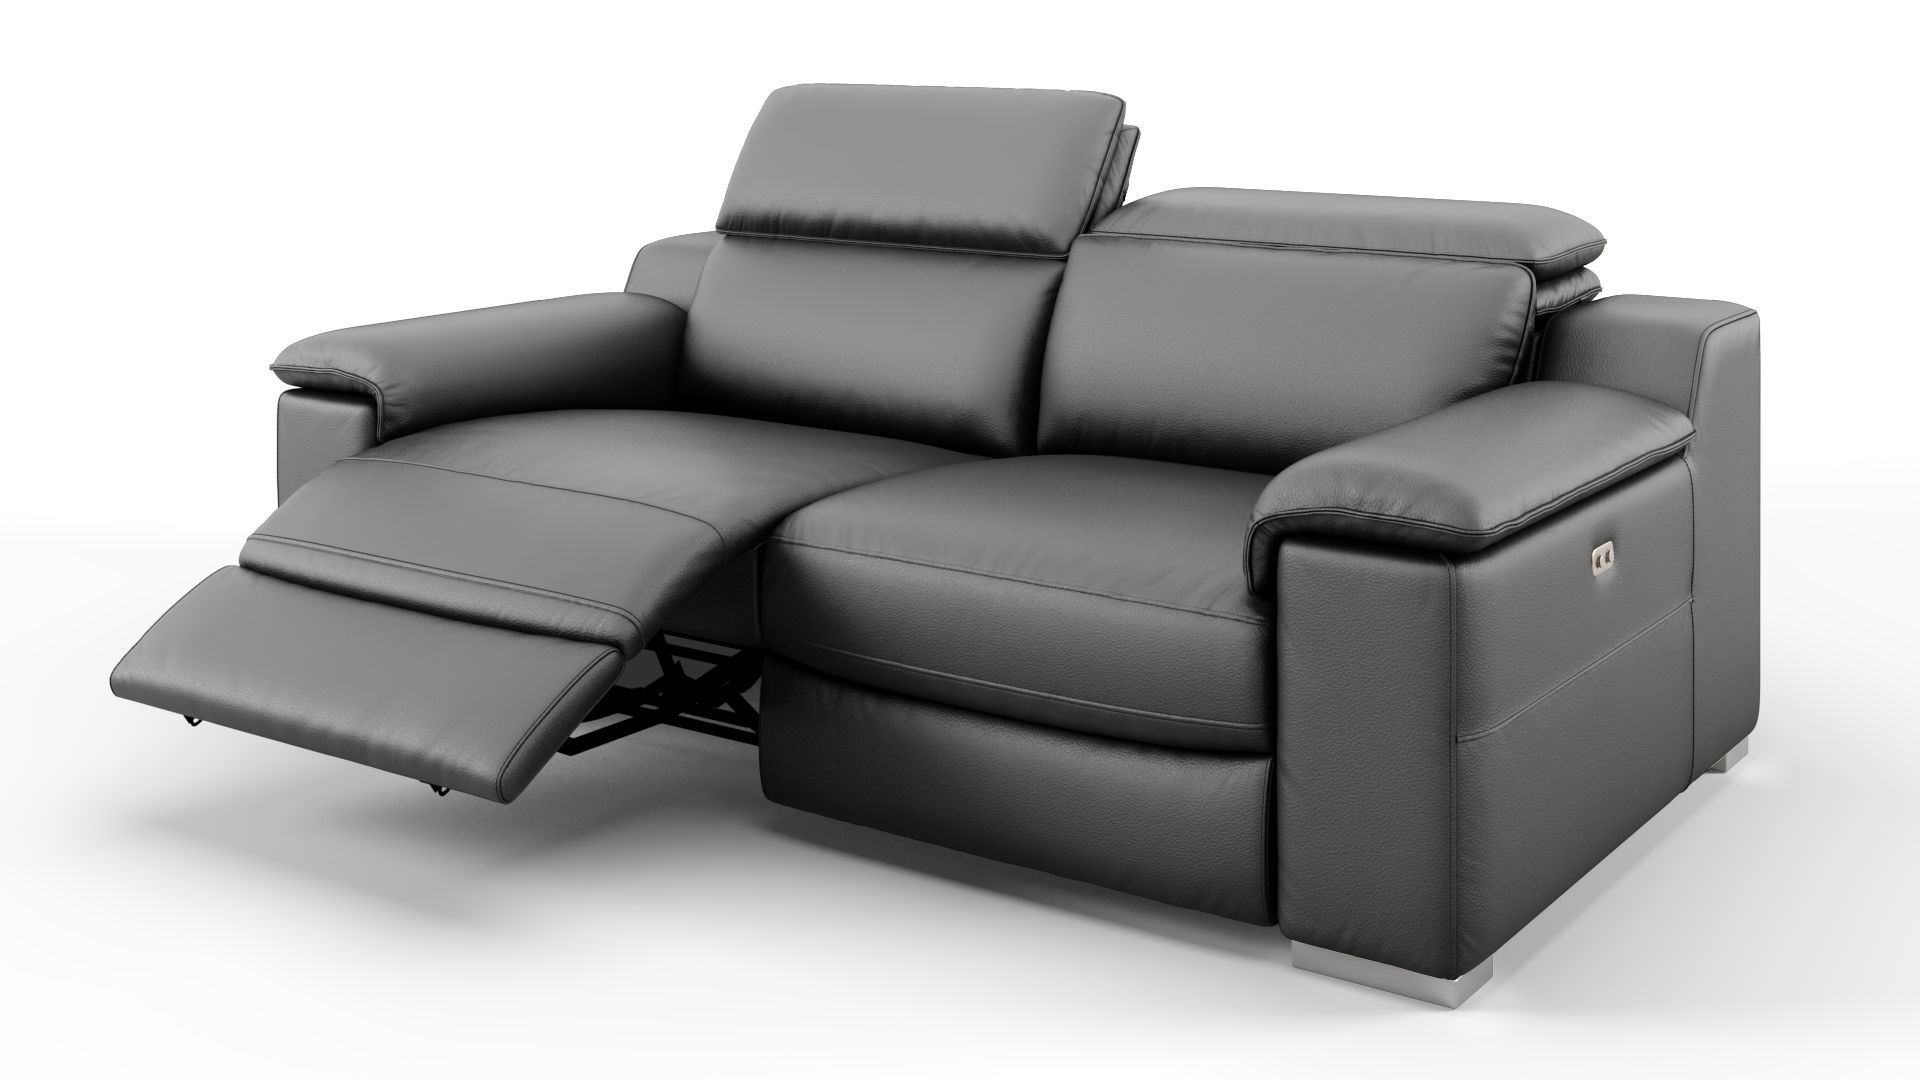 Design Sofa 2 Sitzer Couch Mit Relaxfunktion Sofanella Sofa Mit Relaxfunktion 2 Sitzer Sofa Sofa Design